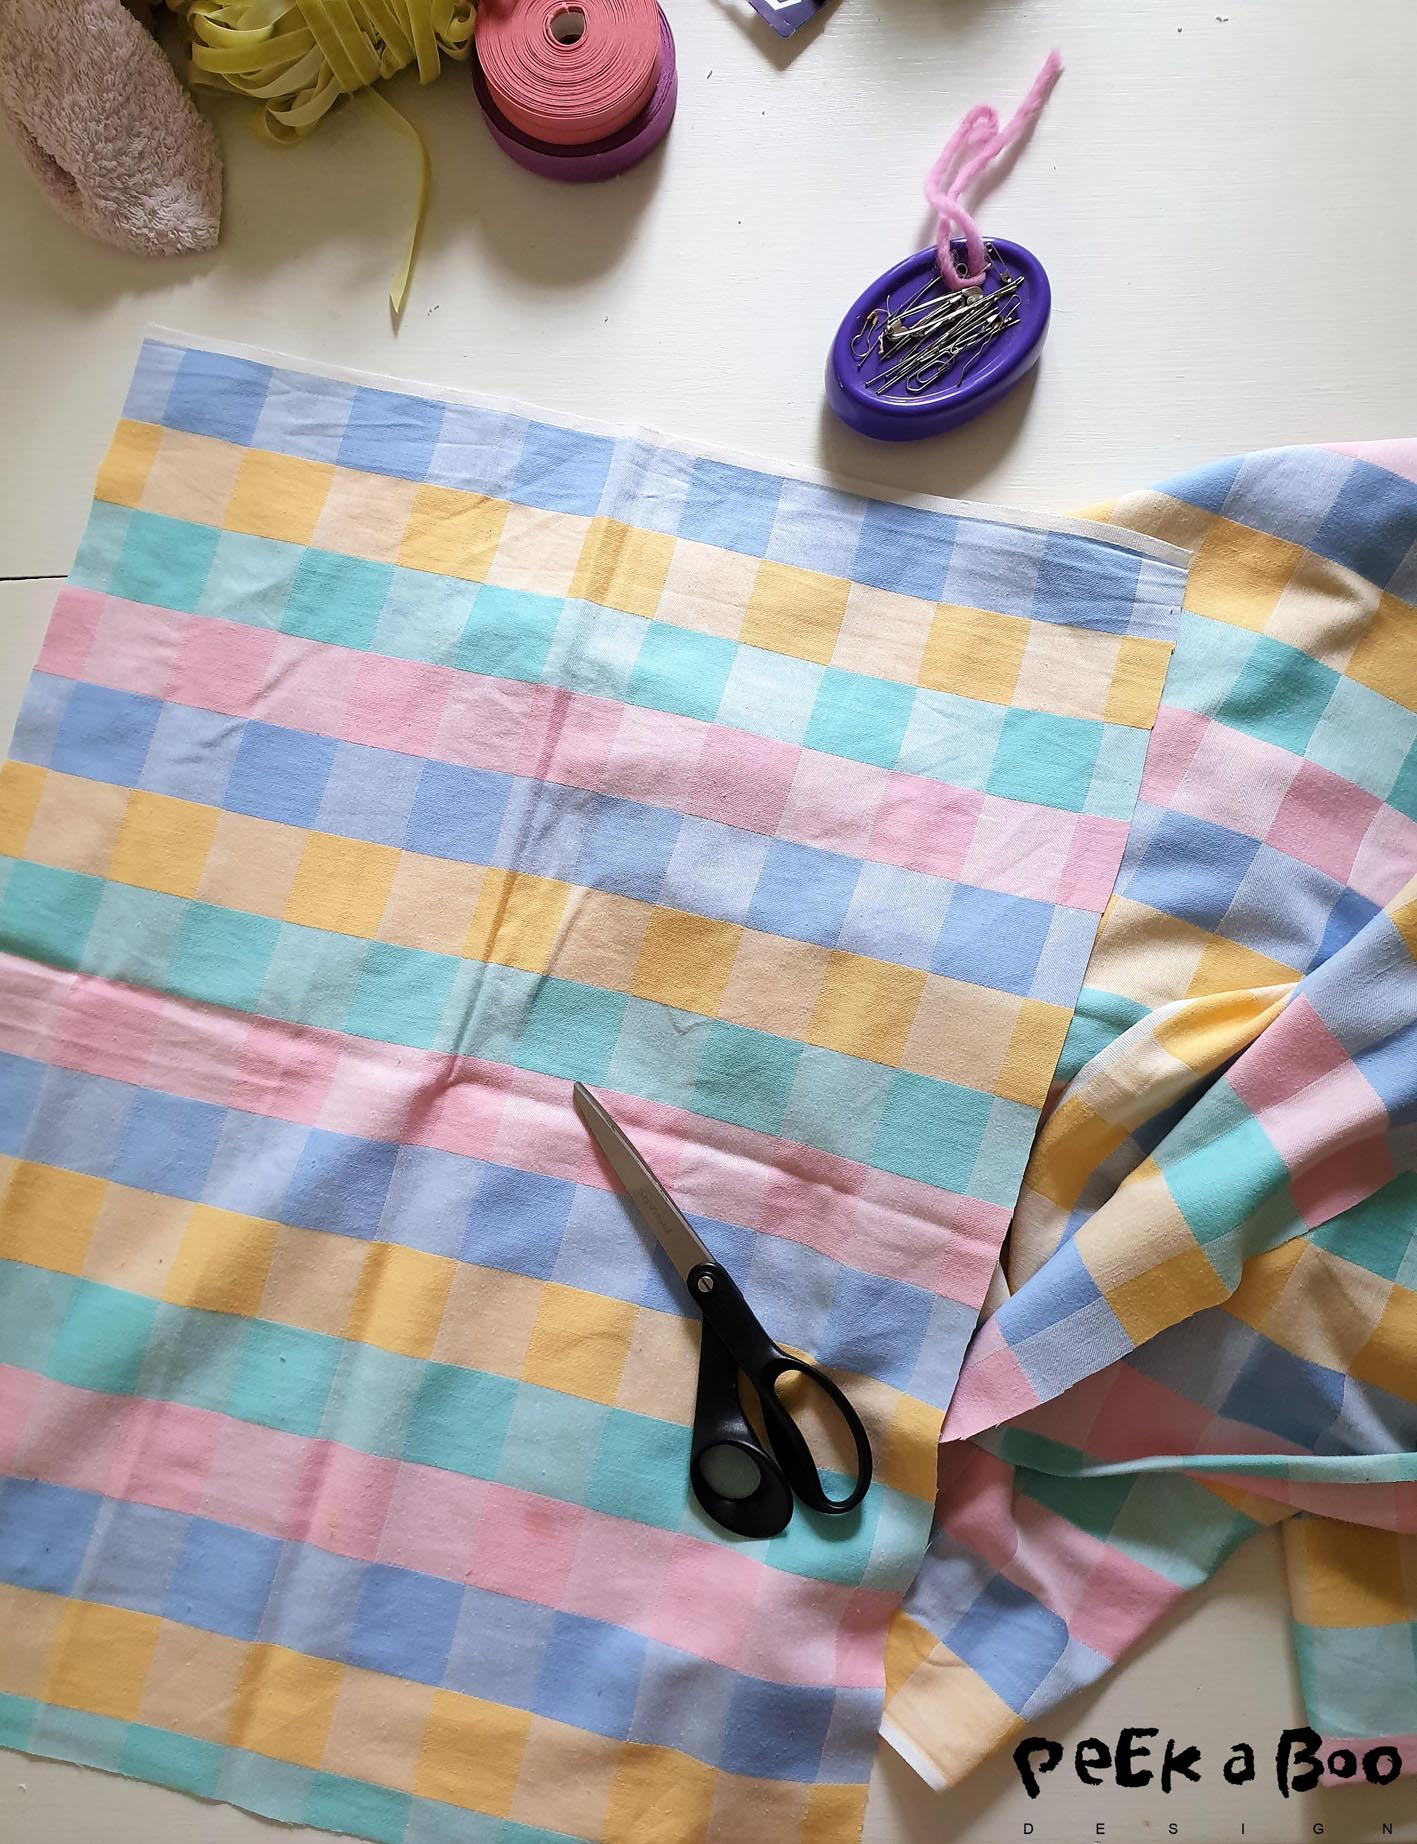 Start by cutting out squares that matches your prefered size of tea towels and try to get around the dirty spots on your tablecloth.